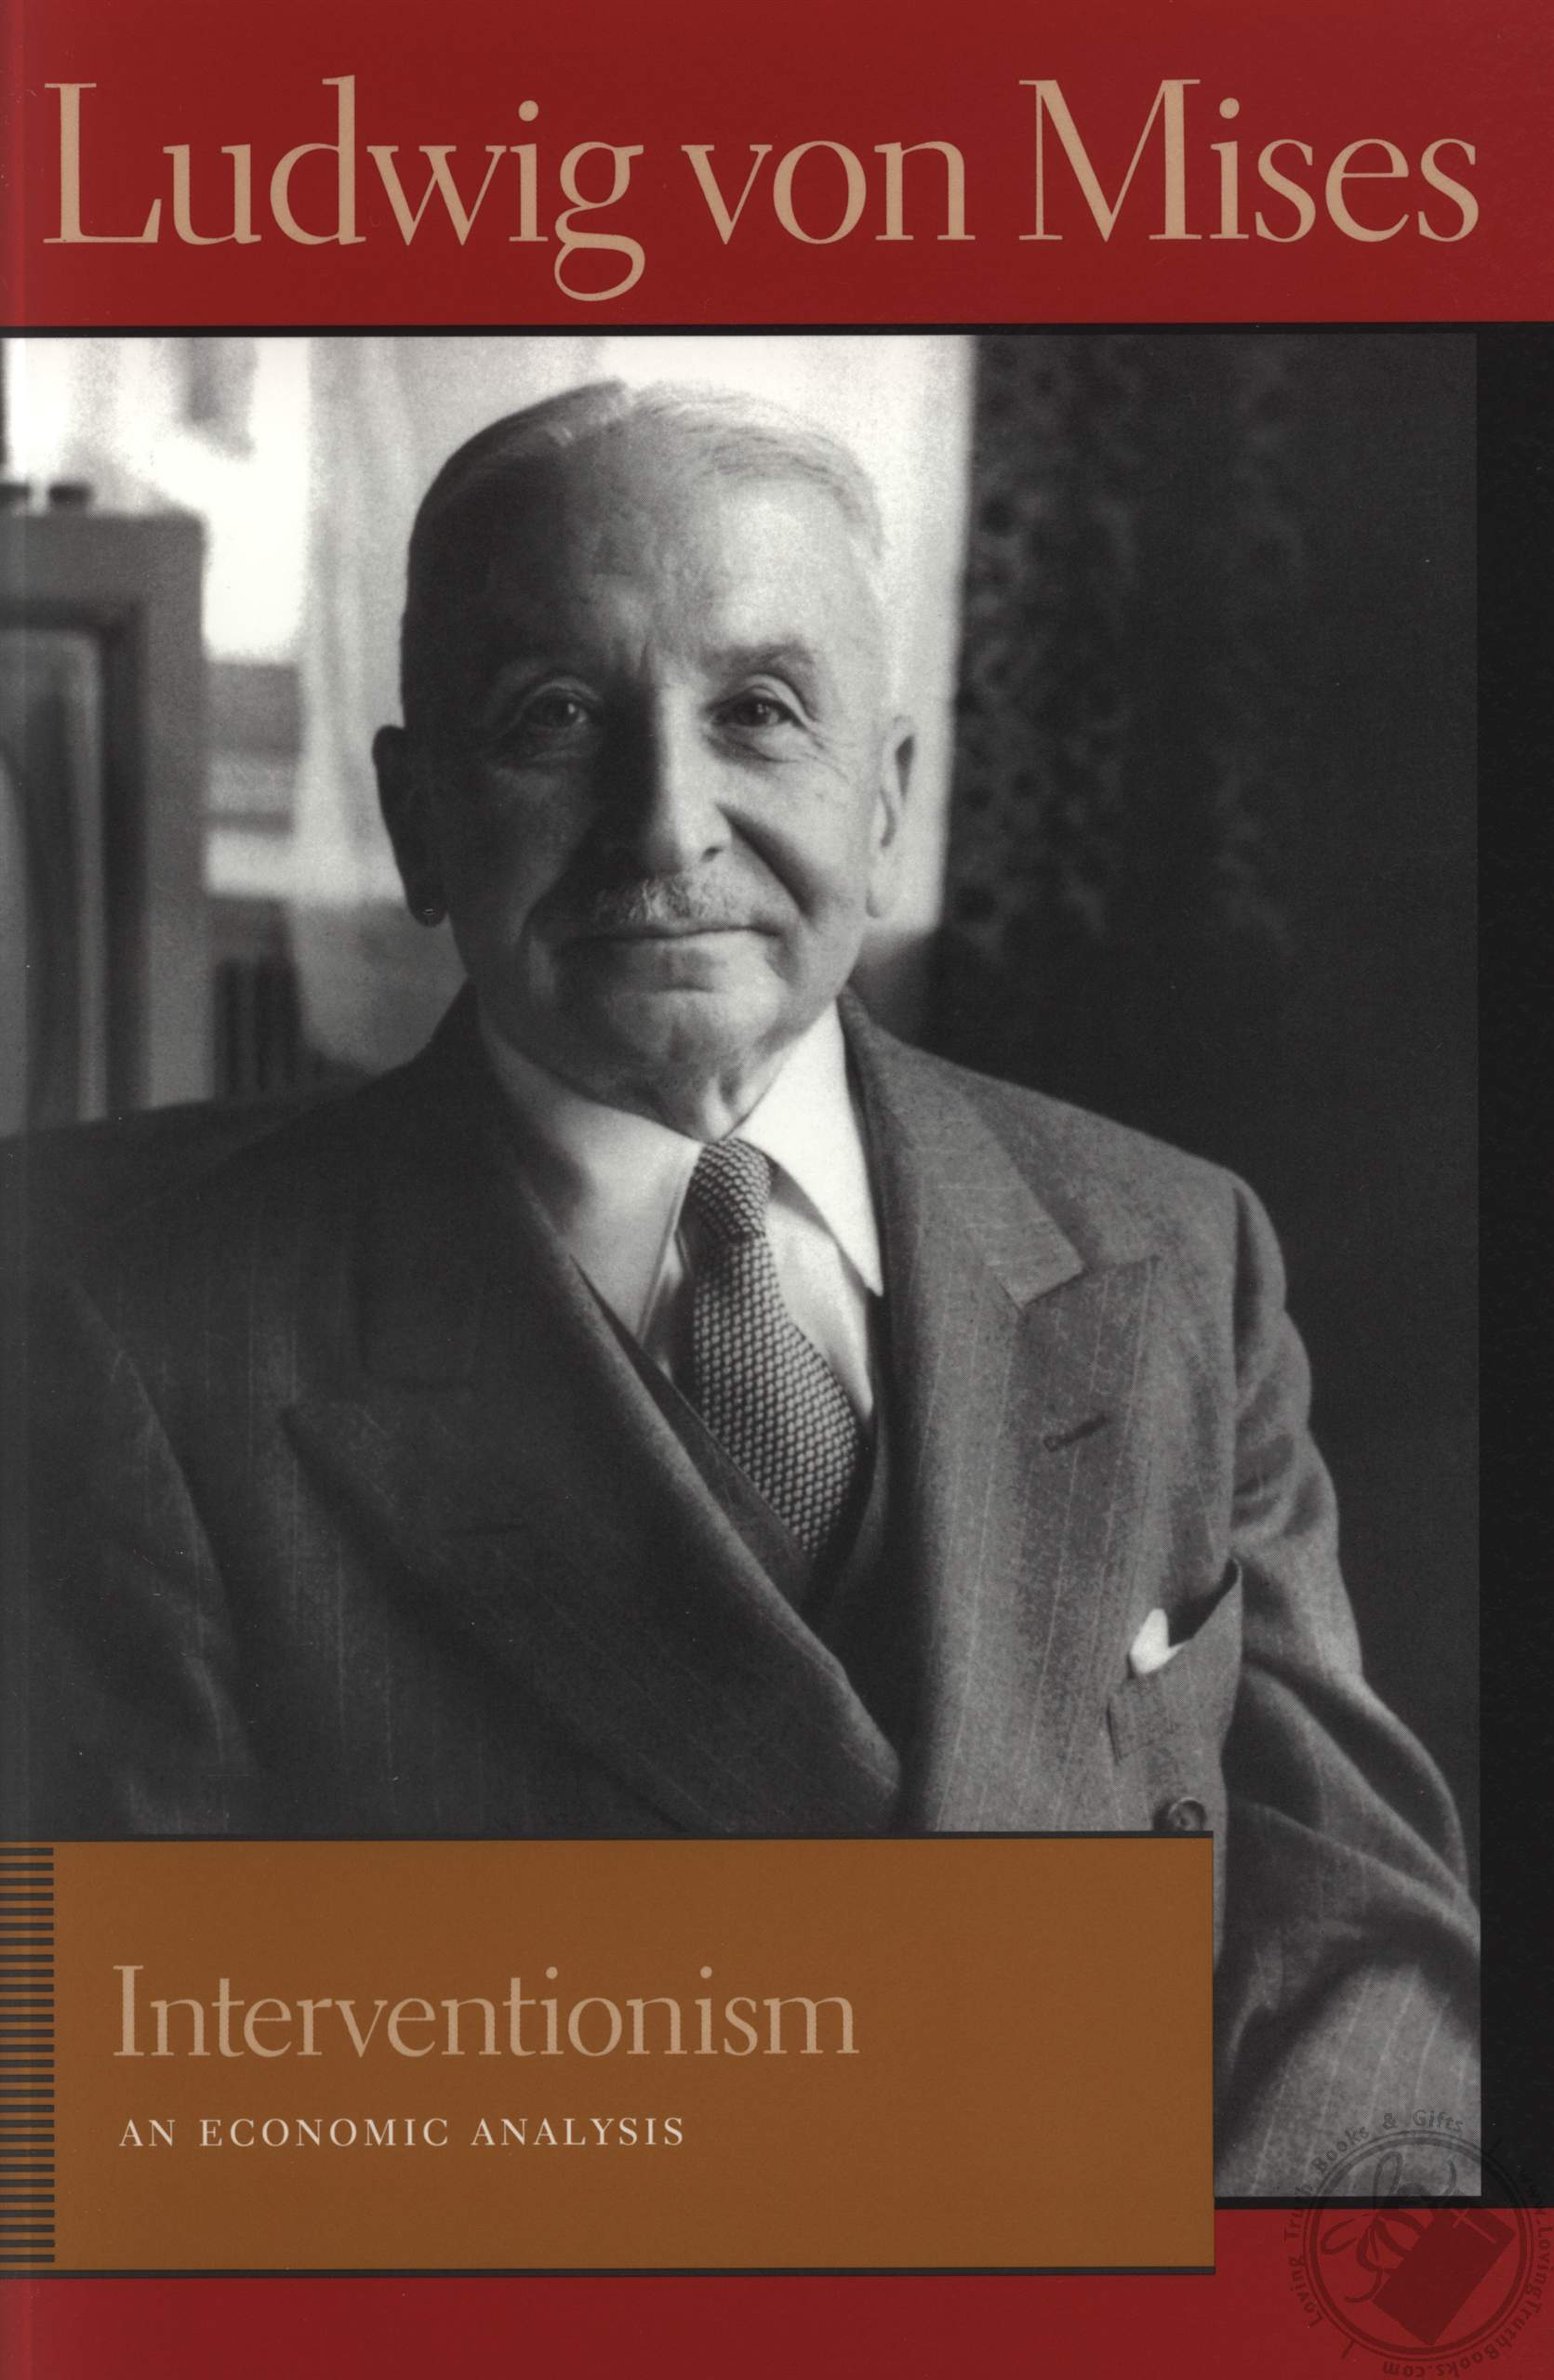 a look into life and achievements of ludwig von mises Ludwig von mises, along with f a hayek, can be considered one of the most   in whatever form we find it, is, like economic life itself, a product of  mises  himself put great faith in the achievements of economic theory  however, his  claims about the impossibility of socialism seem overrated, in our view.